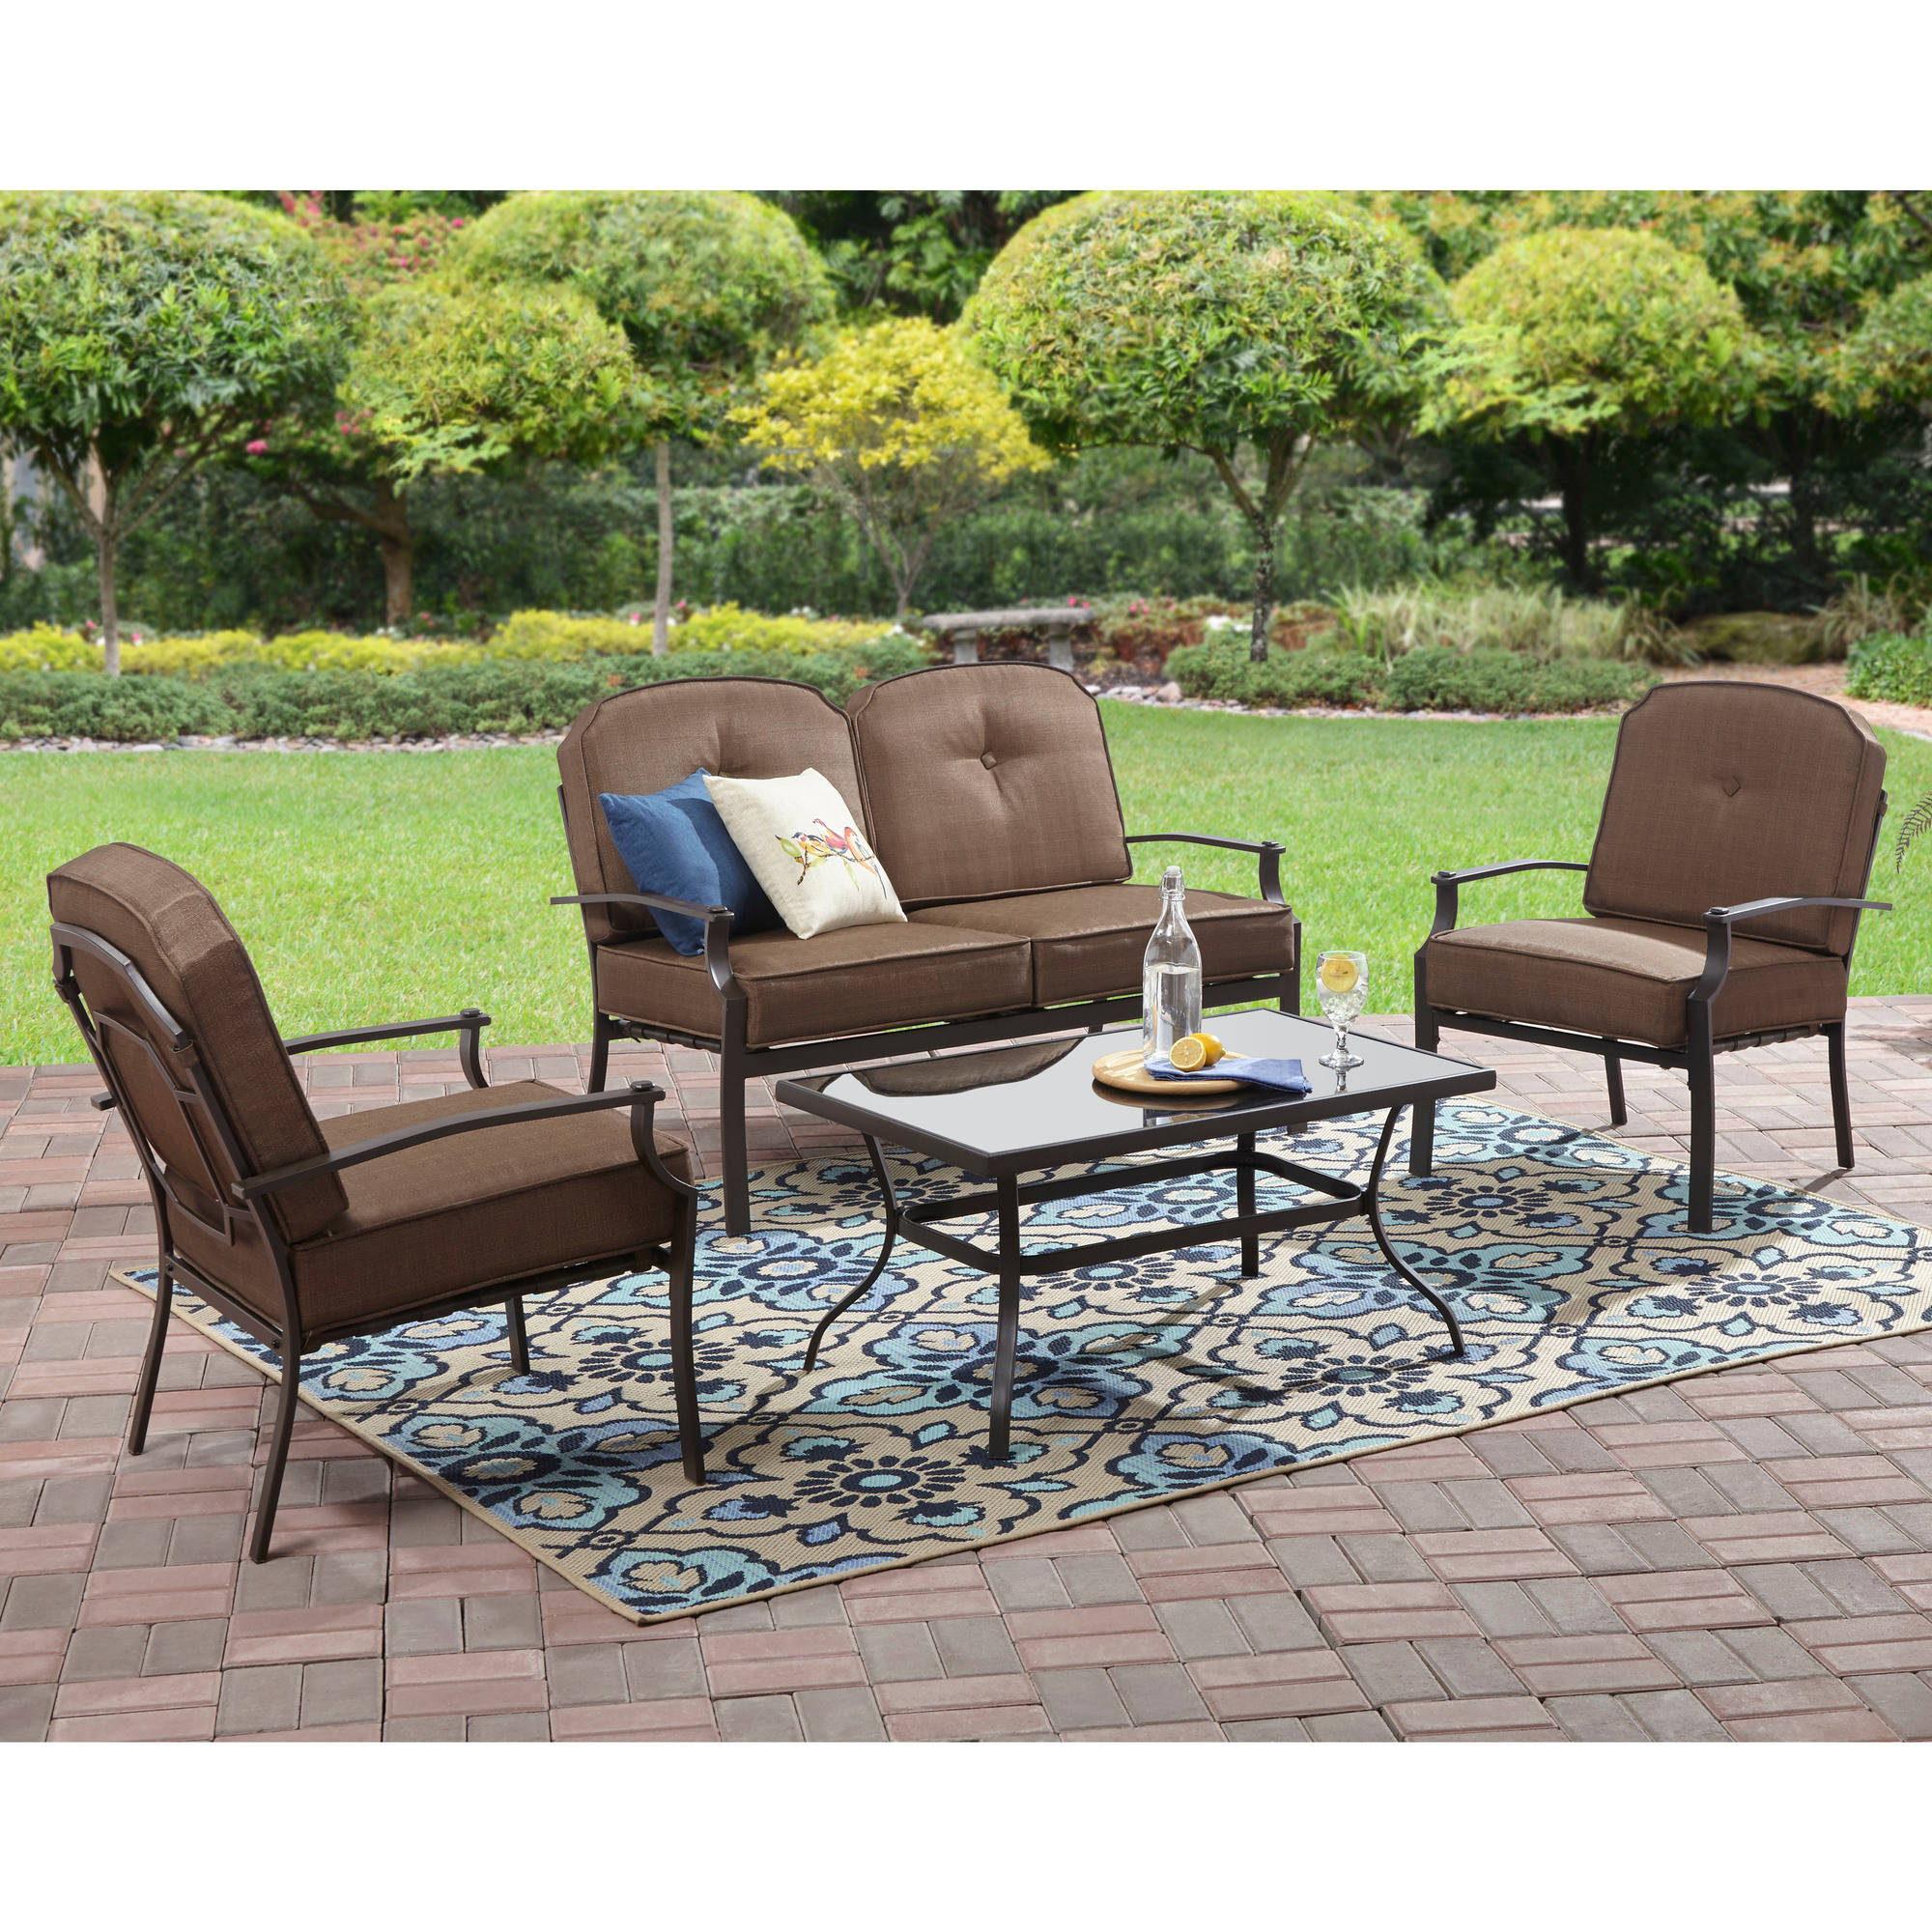 Discount Patio Chair Mainstays Deluxe Orbit Chaise Lounge Umbrella Side Table Seats 2